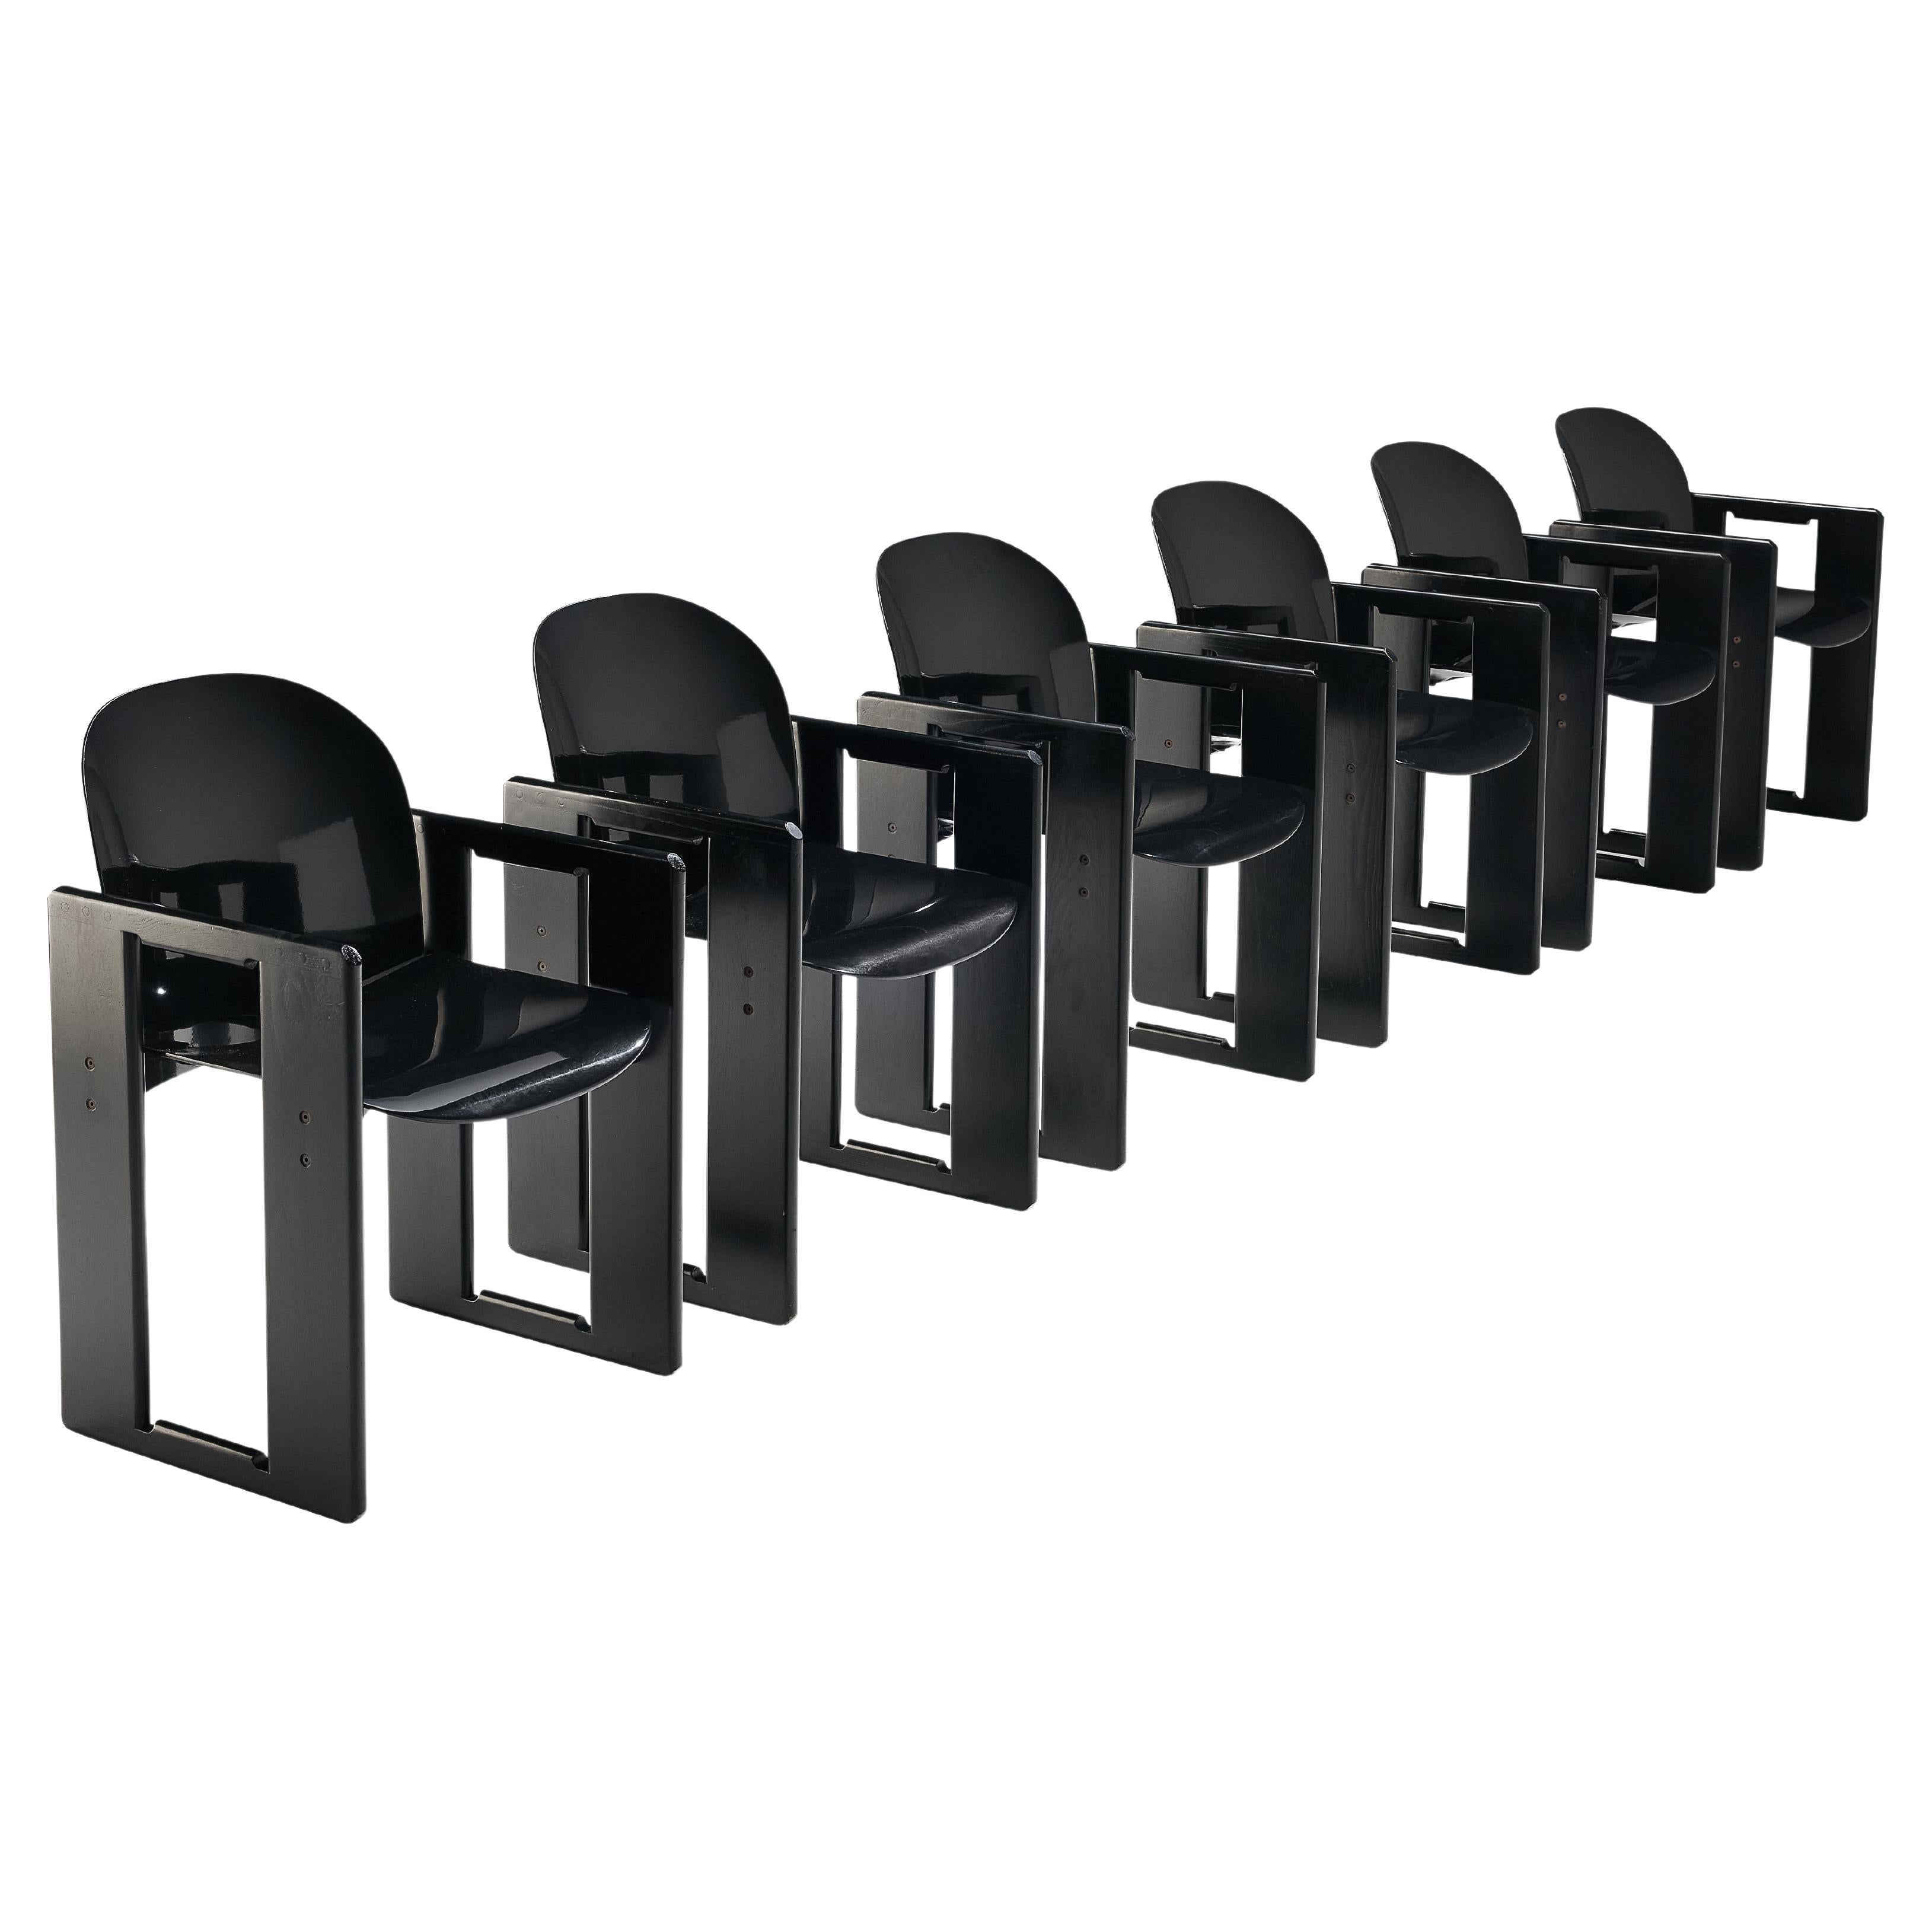 Afra and Tobia Scarpa for B&B Set of Six 'Dialogo' Dining Chairs in Black